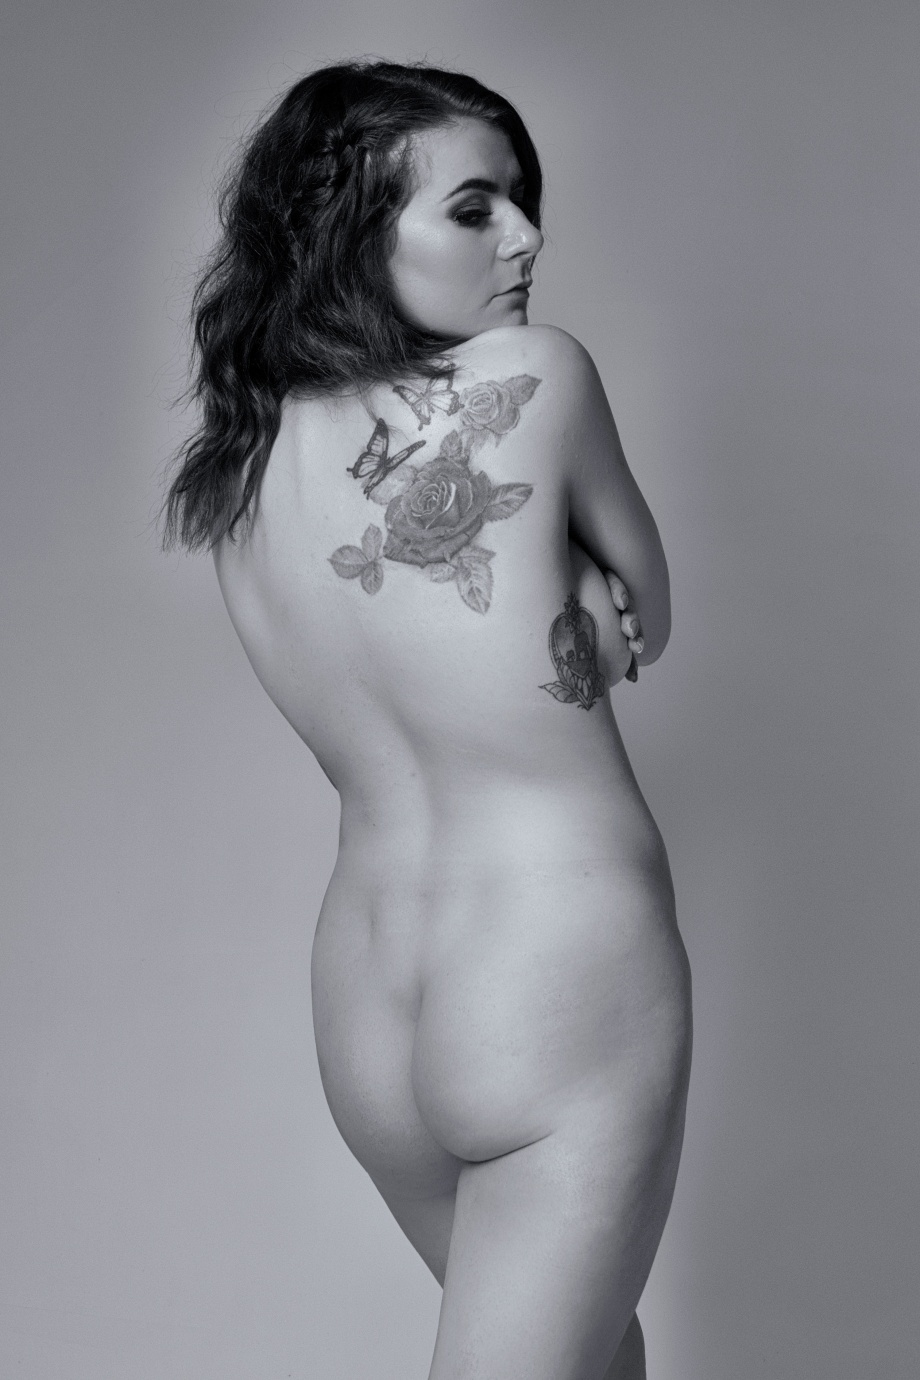 glamour, cork, studio shoot, boudoir, tattoos, nude, implied